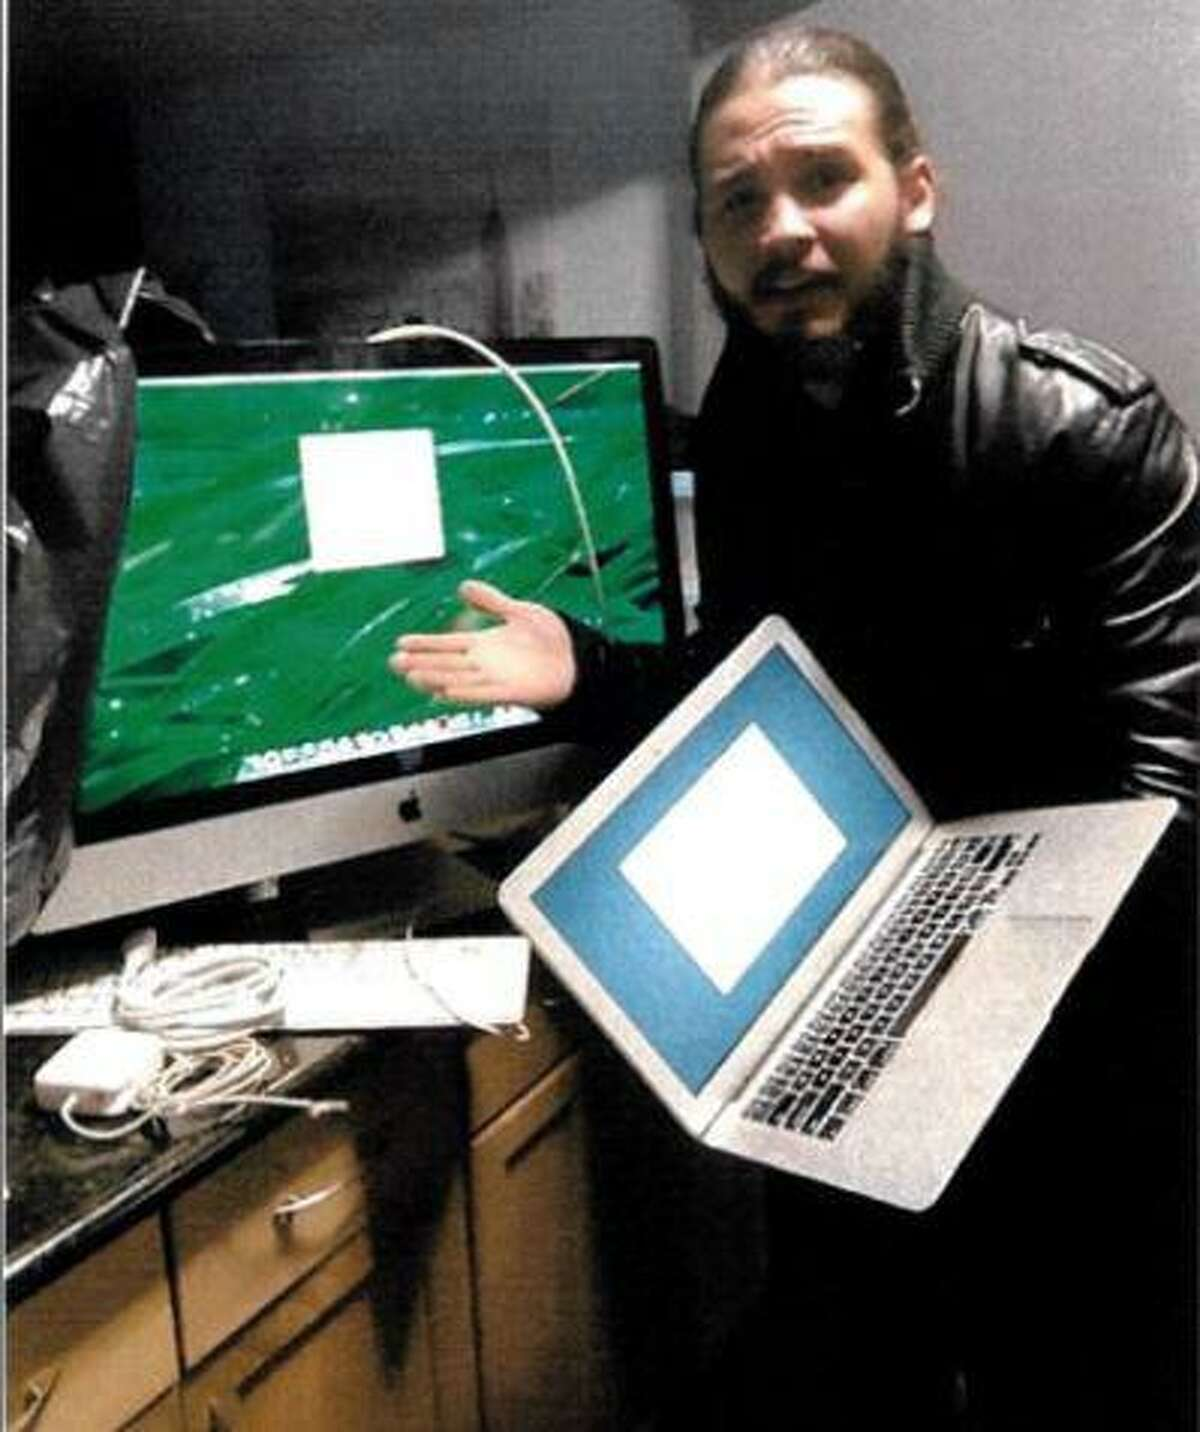 Javier Da Silva is seen with electronic items he acquired, according to federal prosecutors, following the theft of an iPad from Valerie Reyes. Da Silva pleaded guilty in the death of the 24-year-old woman and dumped her body in Greenwich in 2019.